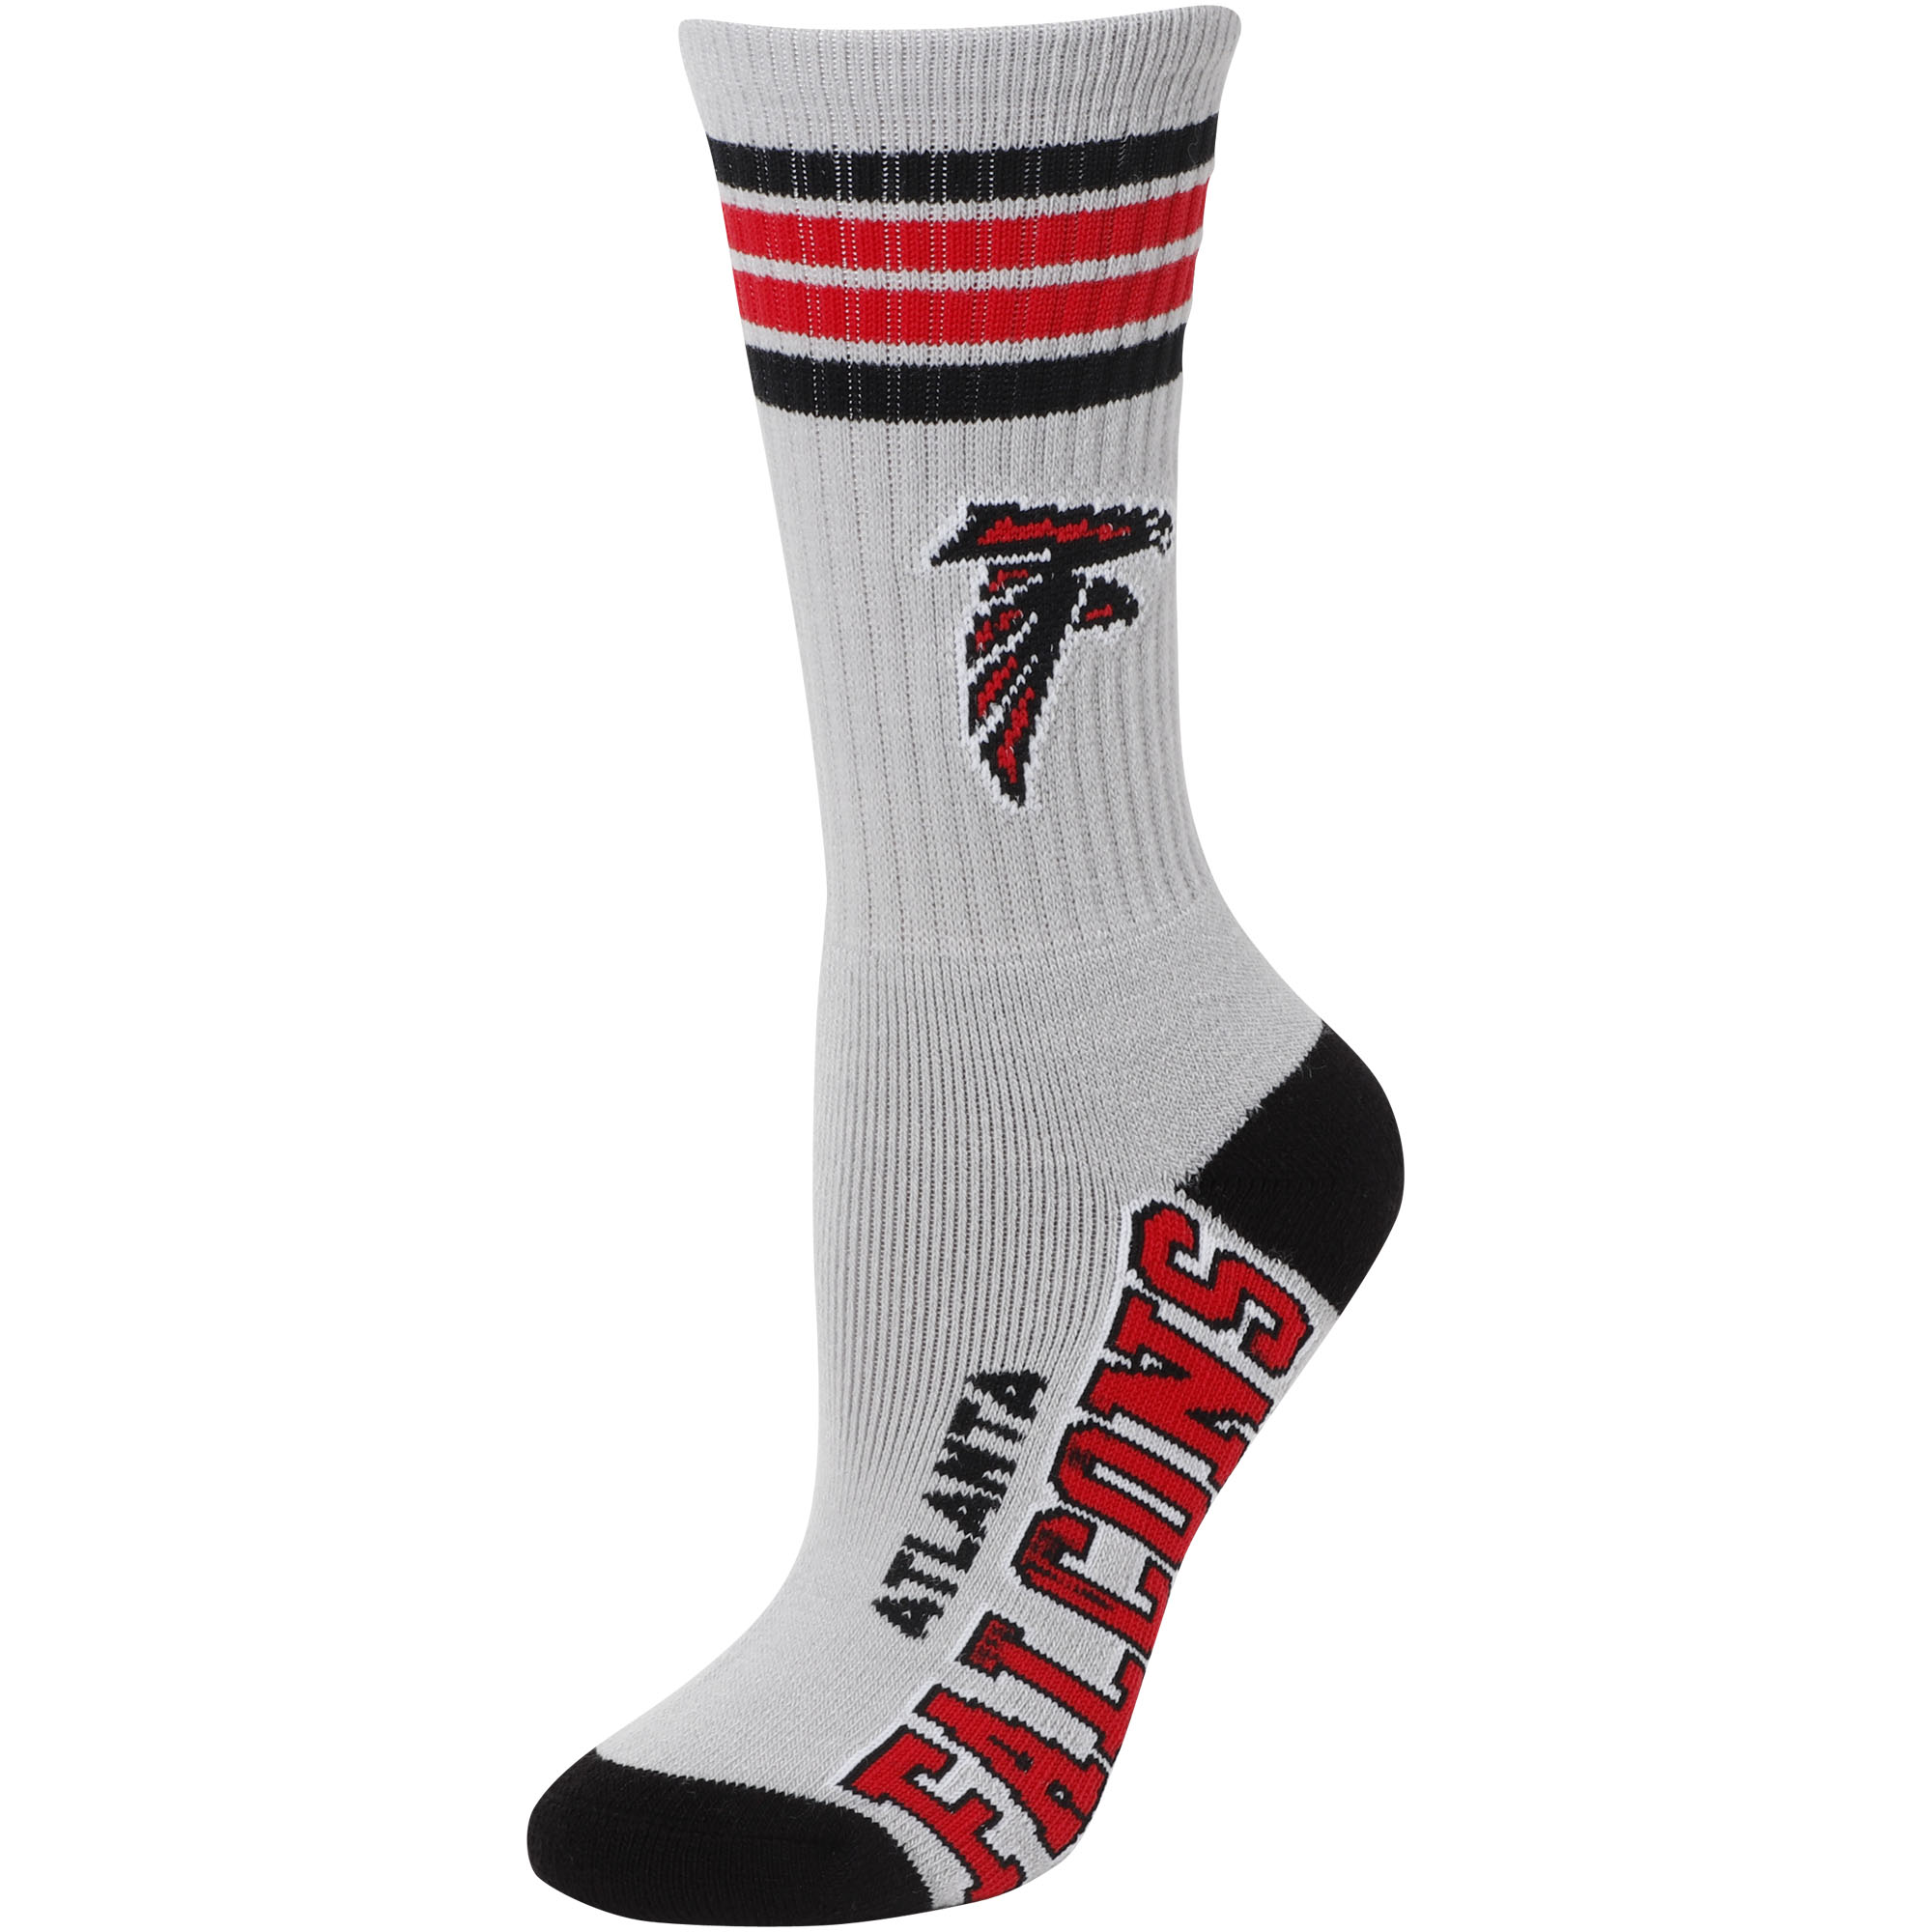 Atlanta Falcons For Bare Feet Women's Deuce Crew Socks - M